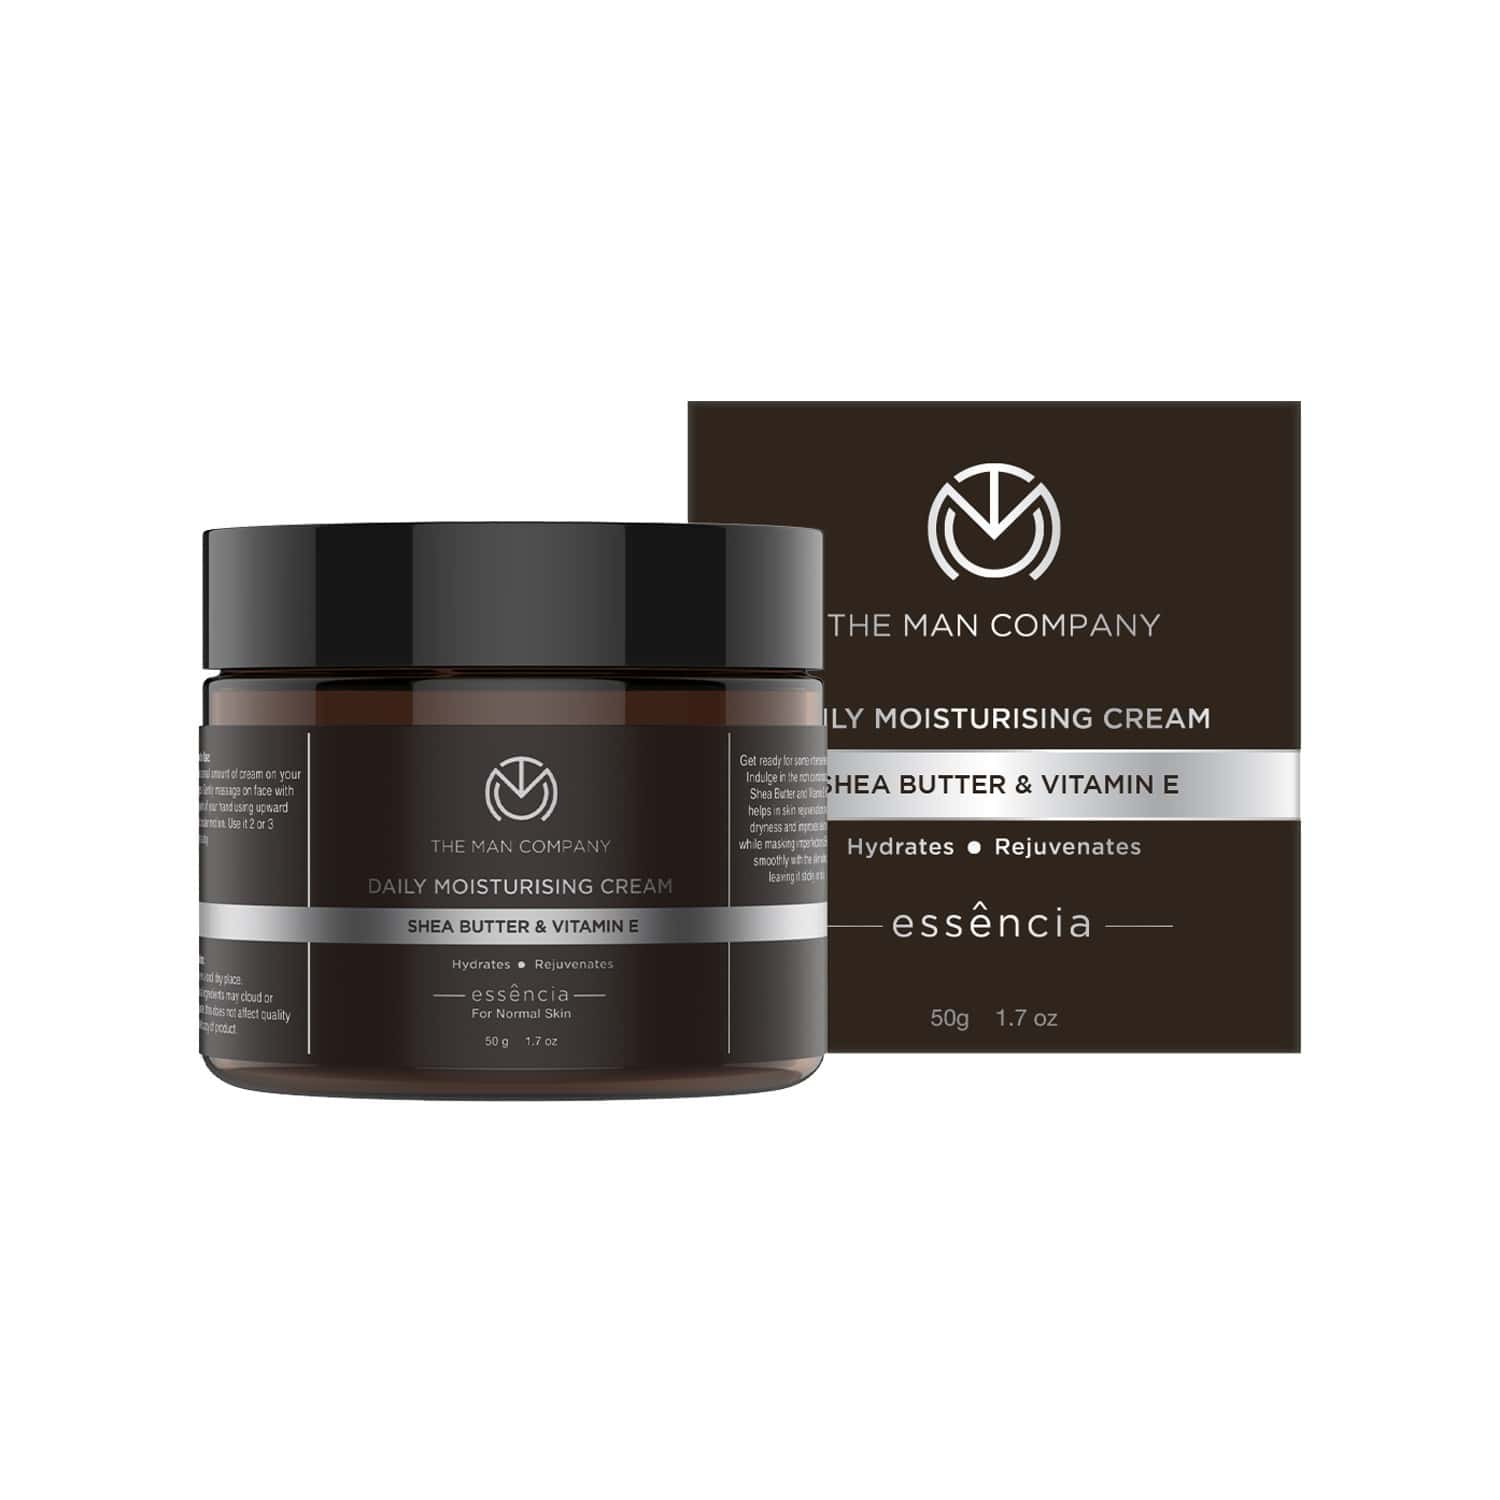 The Man Company Daily Moisturising Cream With Shea Butter And Vitamin E For All Skin Types - 50 Gm